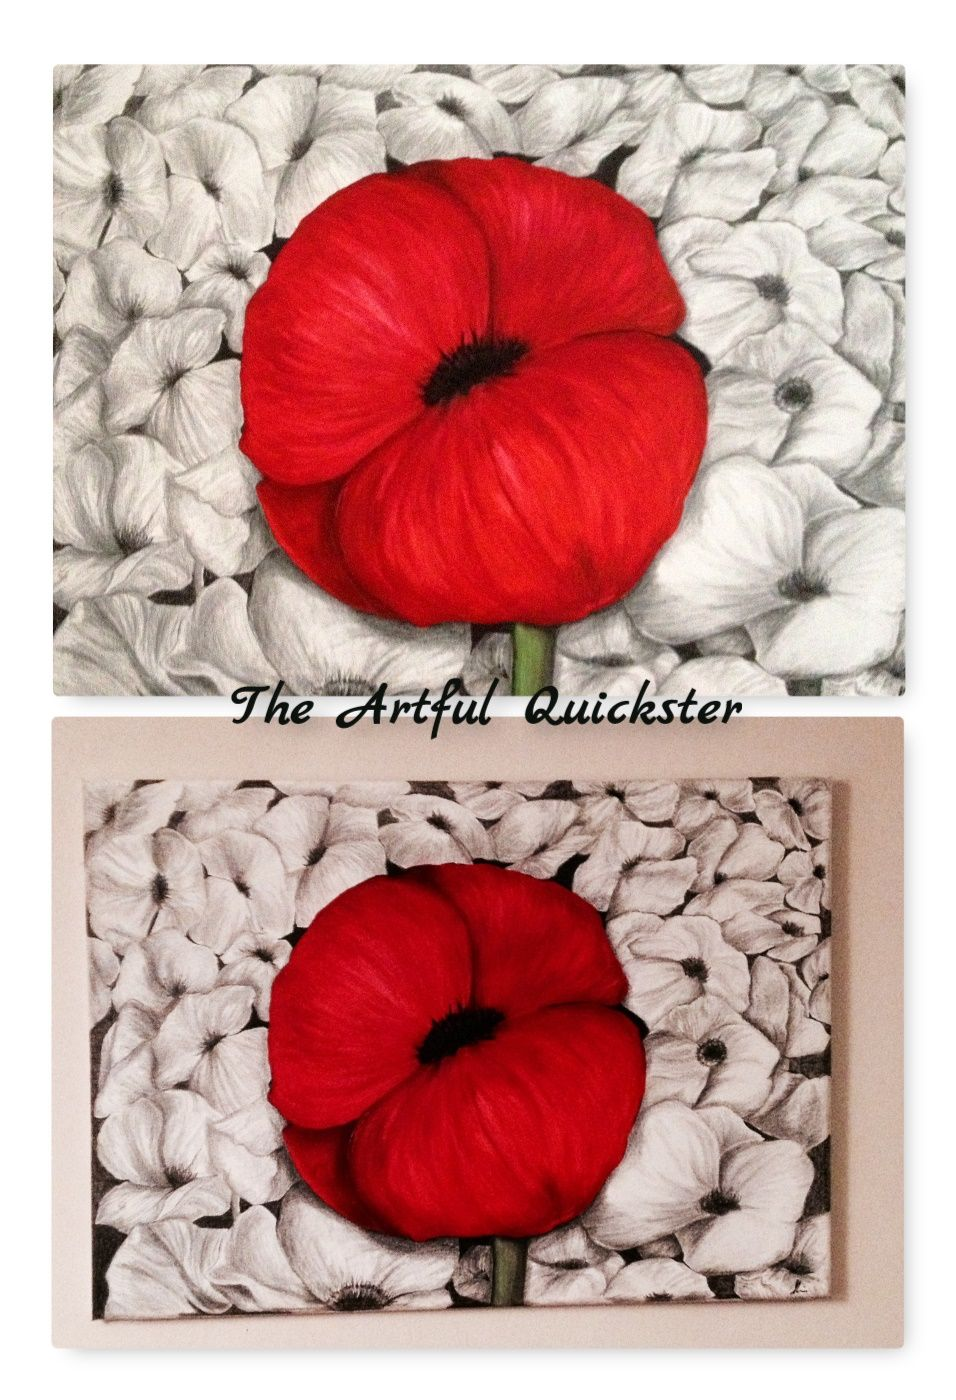 Poppy art large block canvas used acrylic paint and pencil to